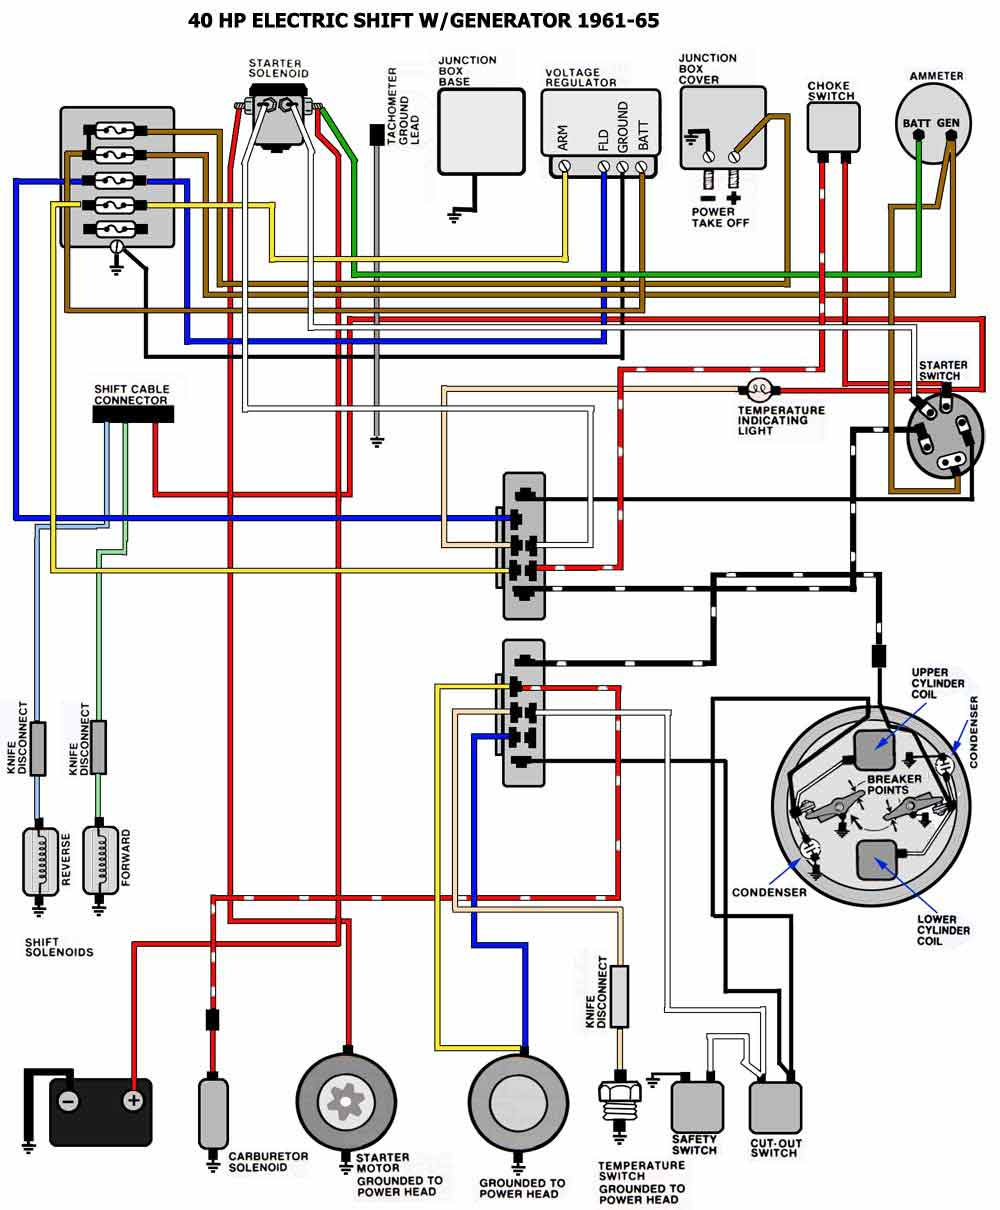 yamaha key switch wiring diagram wiring diagram rh 75 tempoturn de